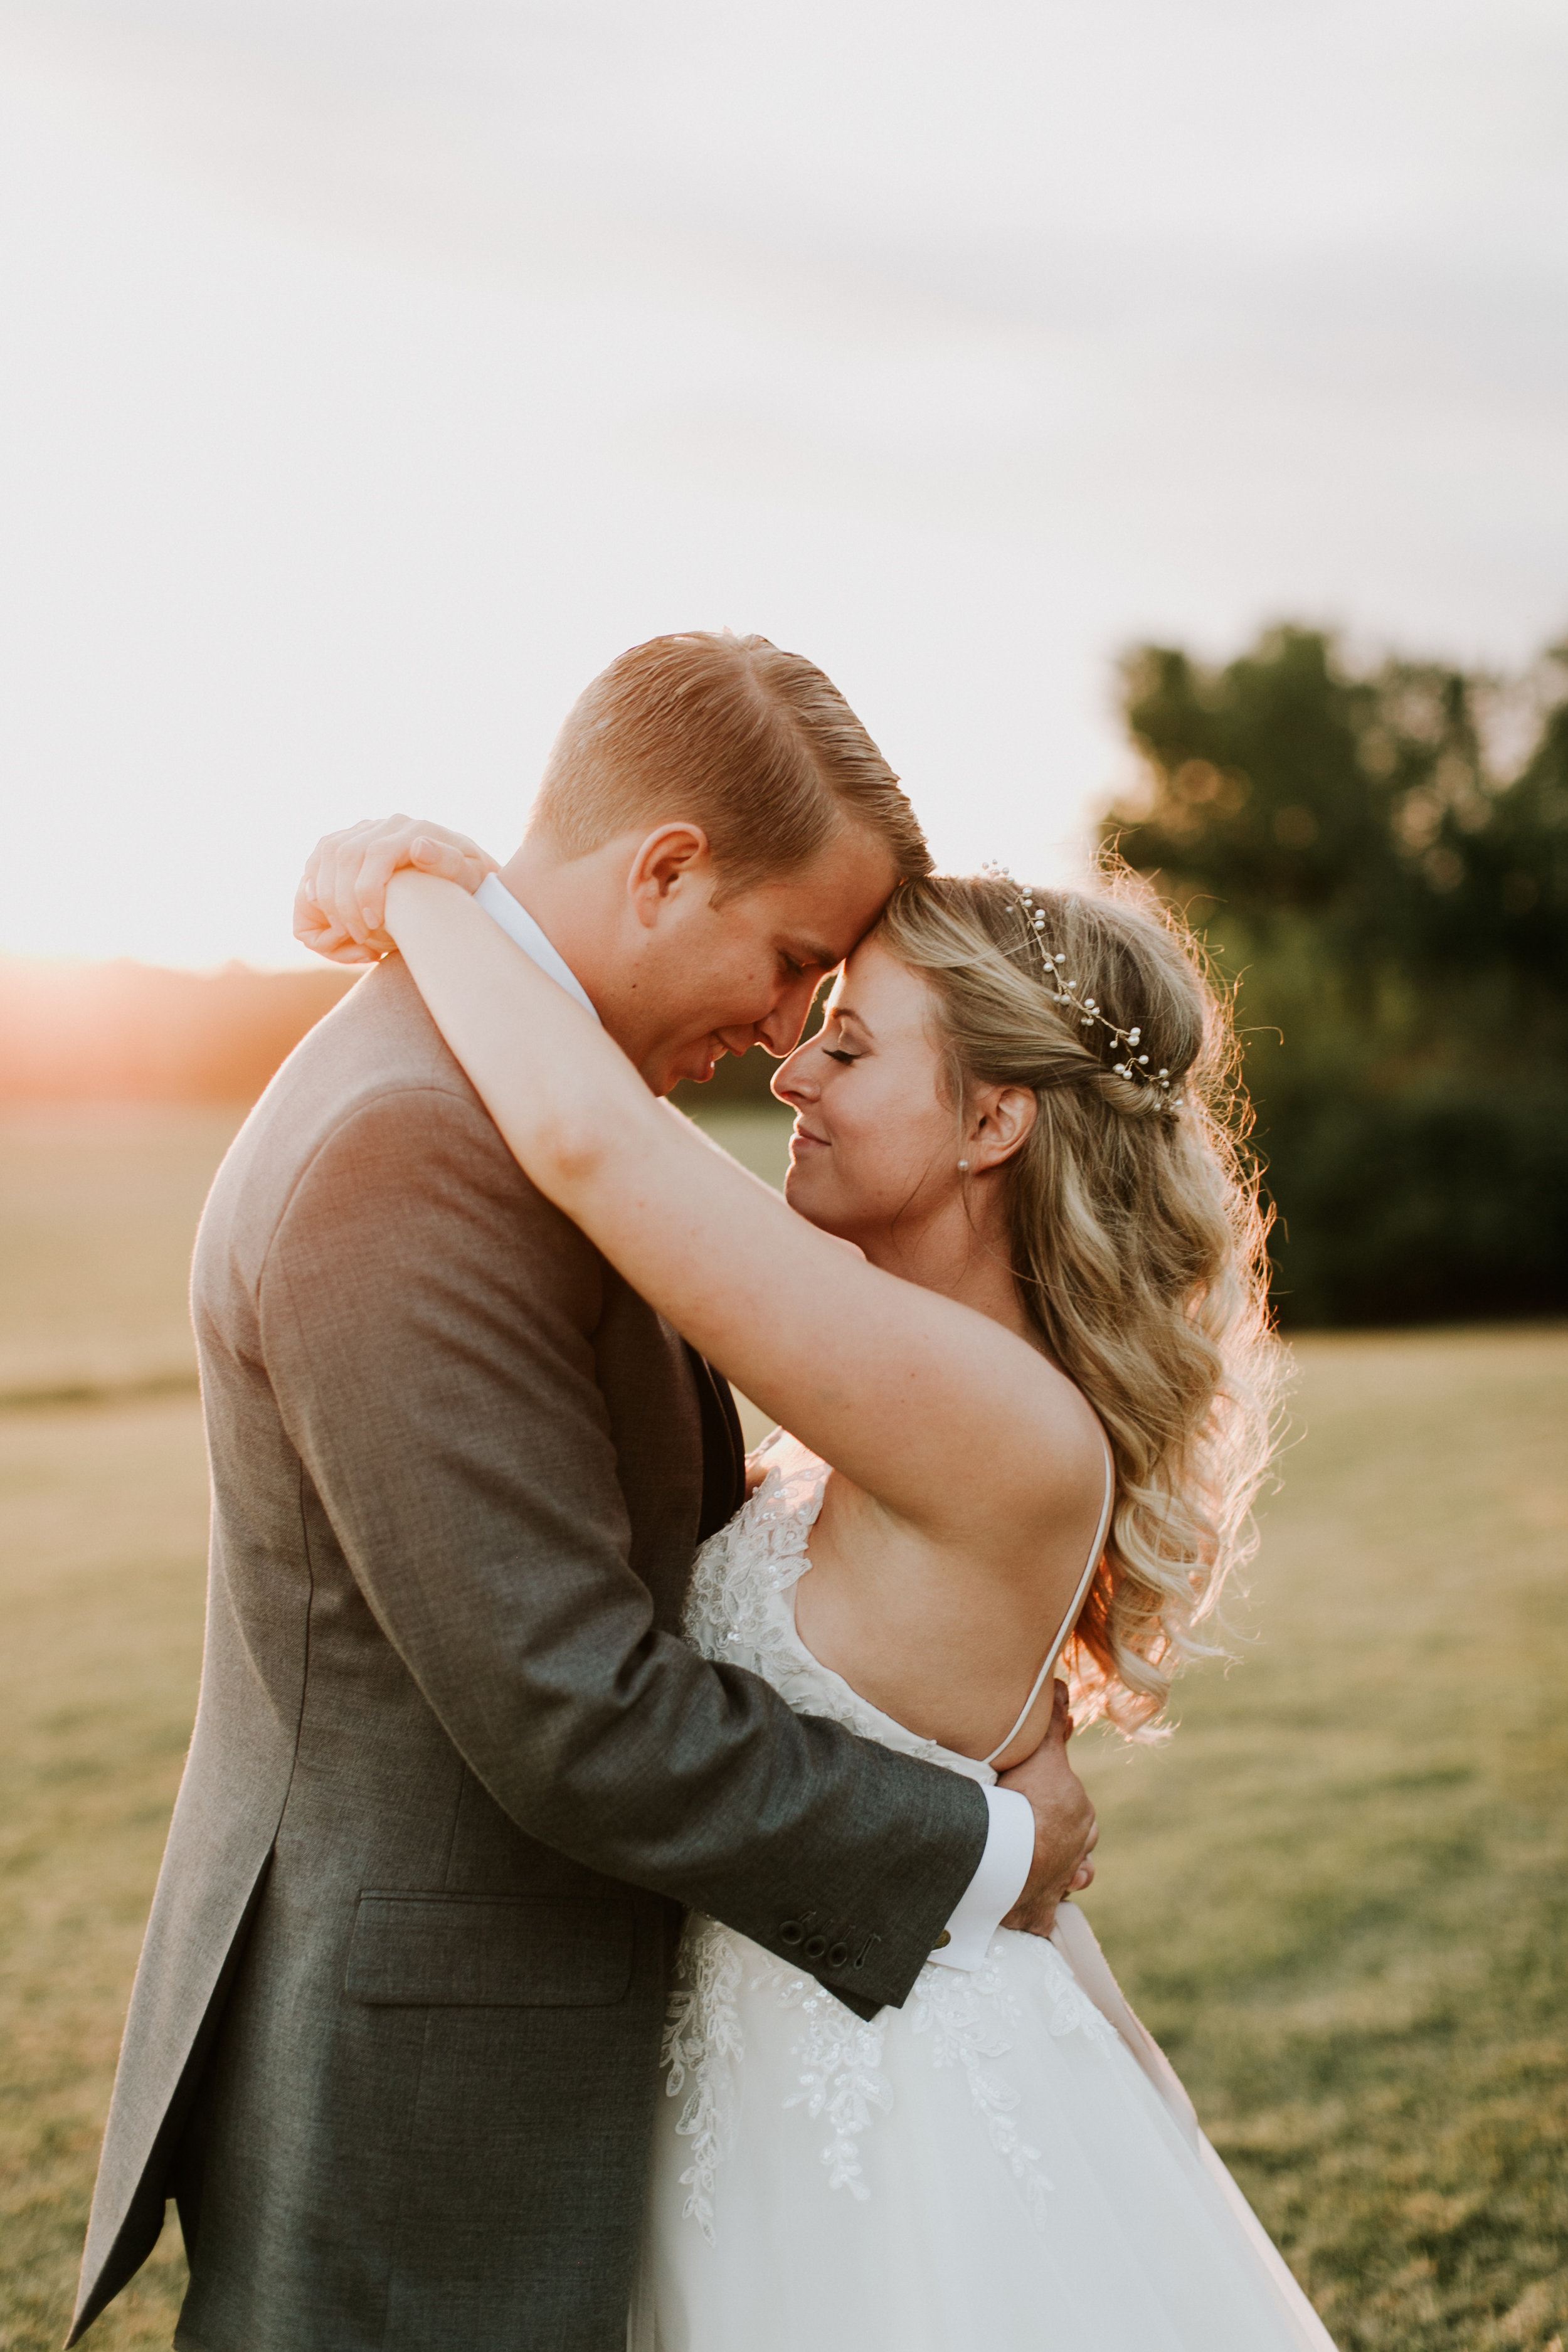 Rustic Oyster Themed Eastern Shore Maryland Outdoor Wedding by East Made Event Company Wedding Planner and Bekah Kay Creative1070.jpg